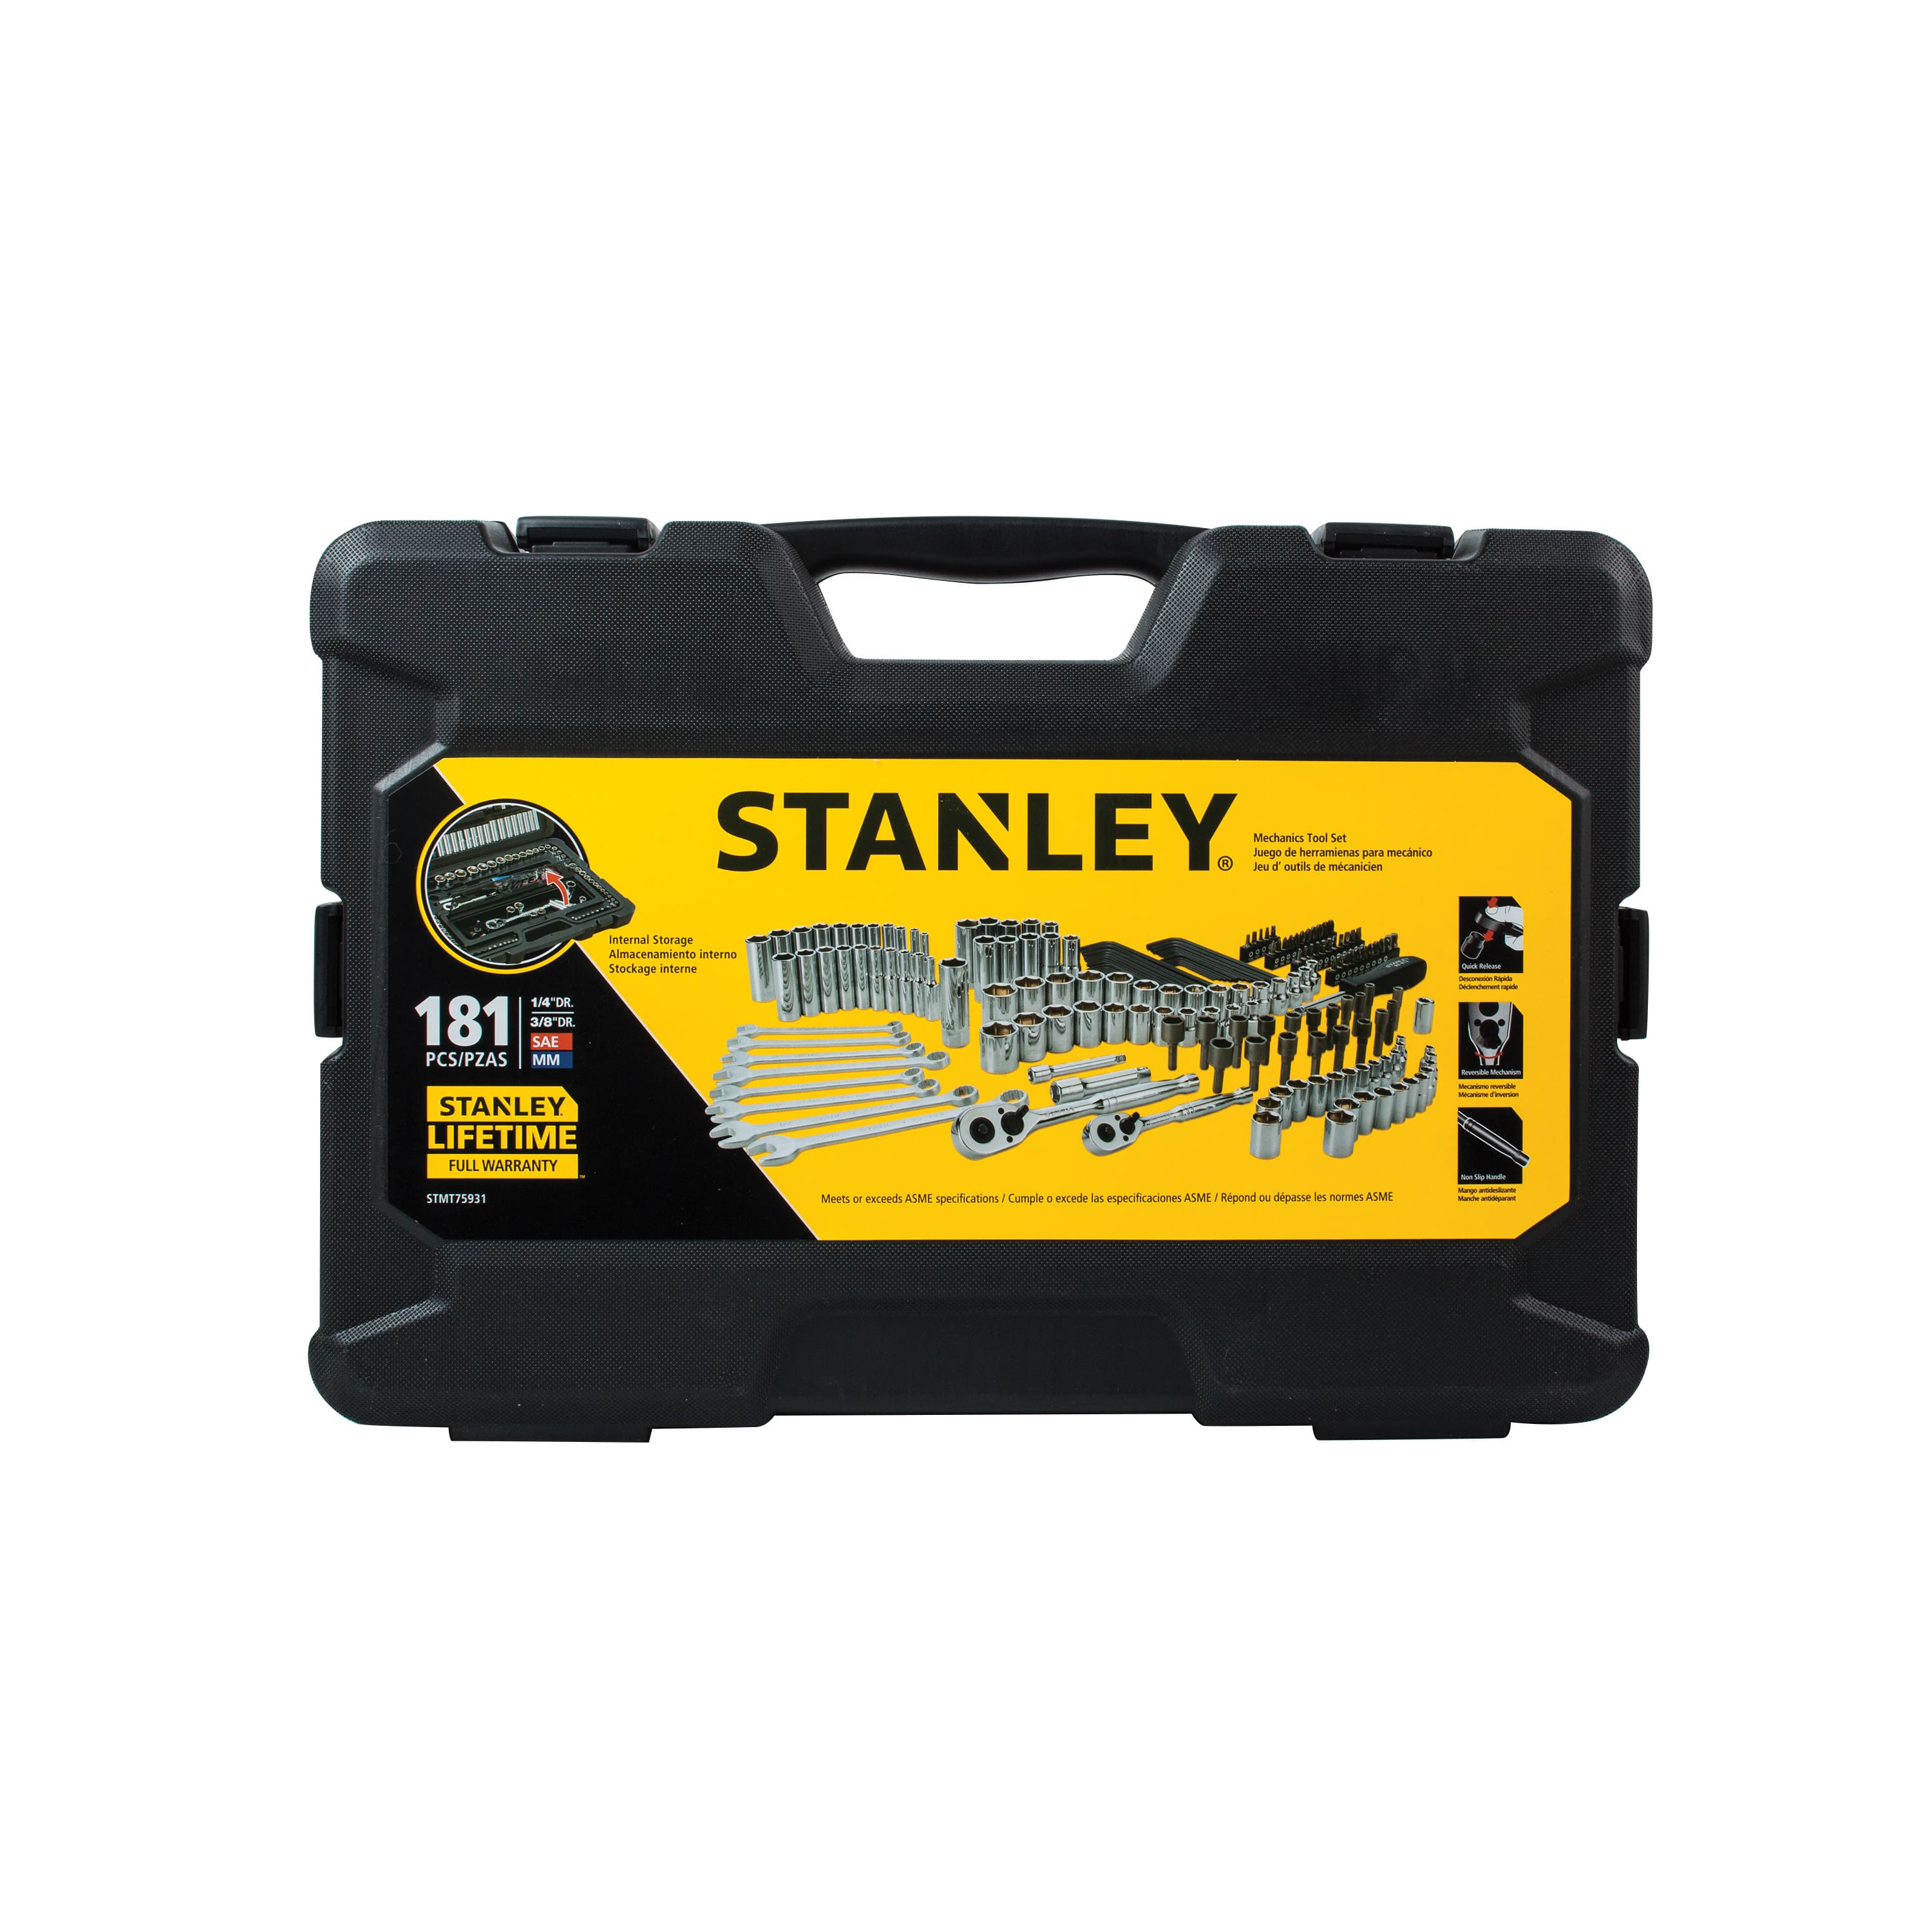 STANLEY STMT75931 181pc Mechanic's Tool set with Storage $54.50